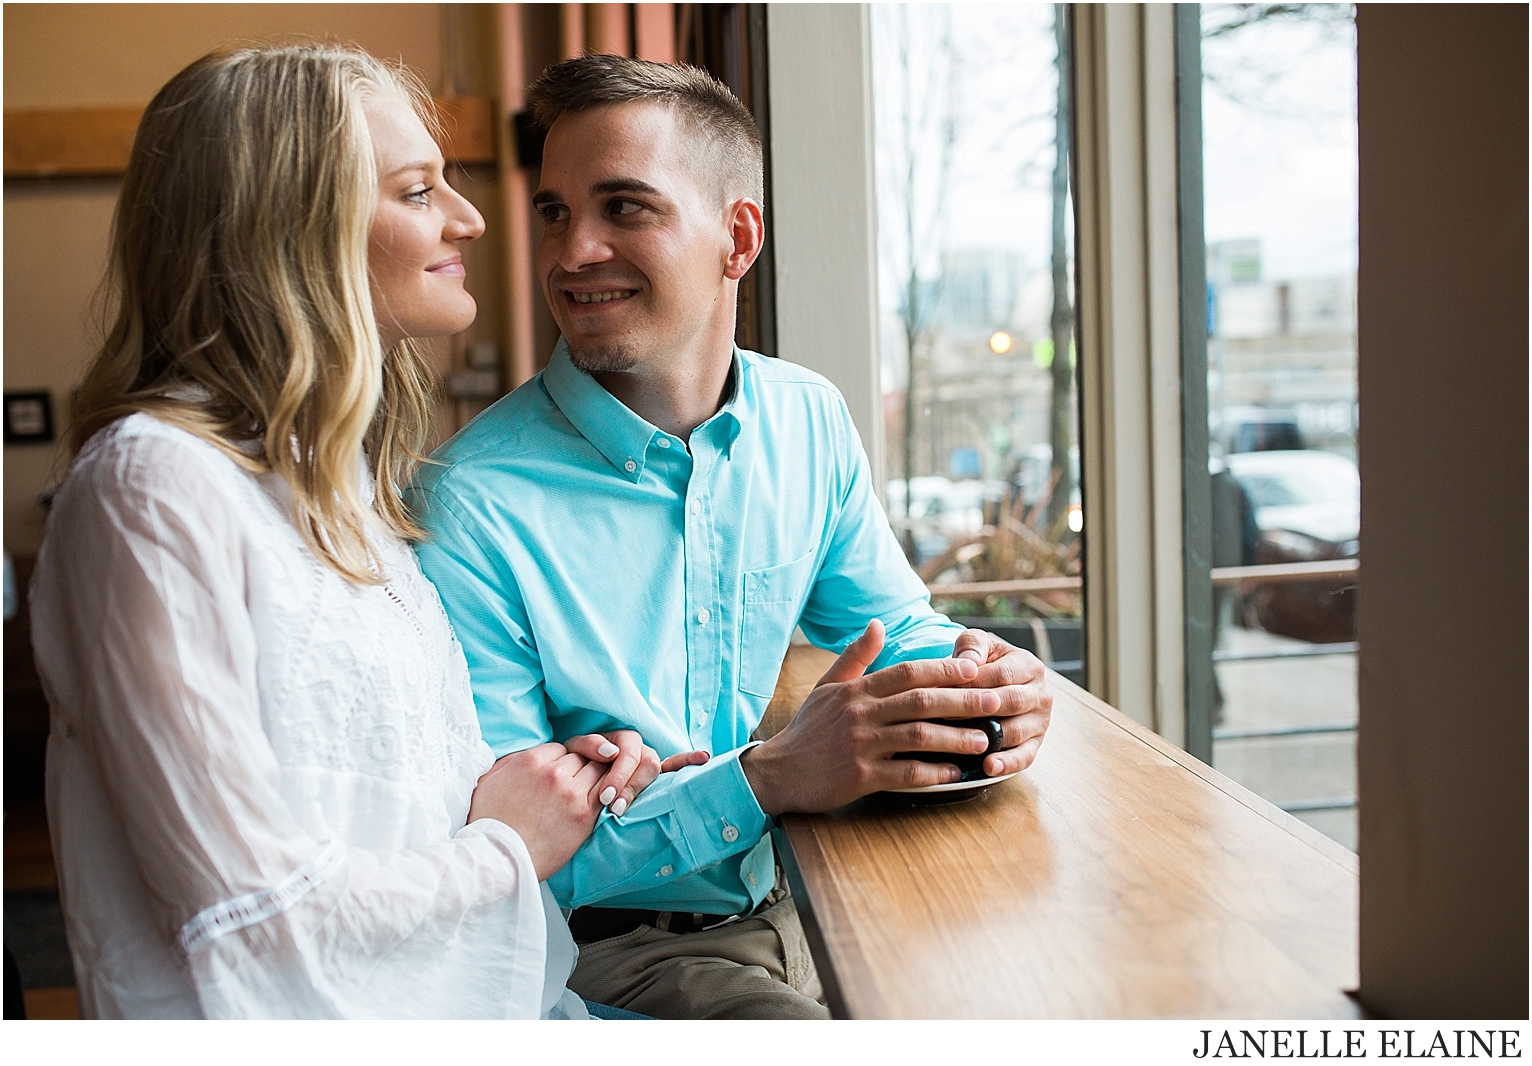 tricia and nate engagement photos-janelle elaine photography-180.jpg